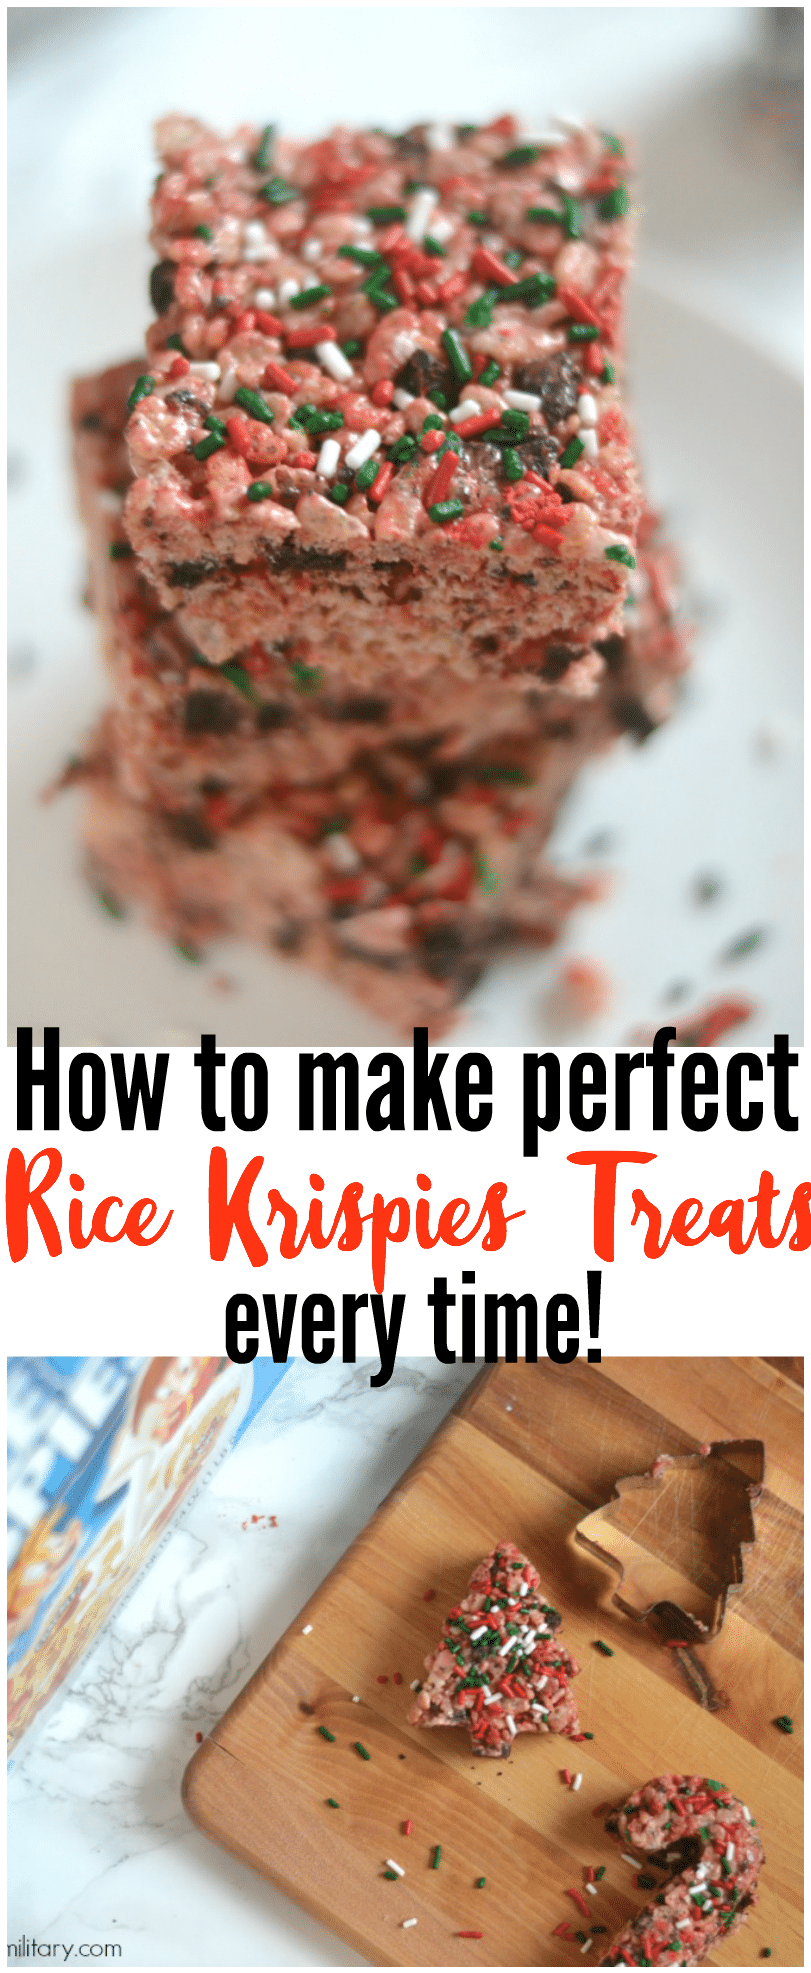 How to create the perfect Rice Krispies Treats every single time!